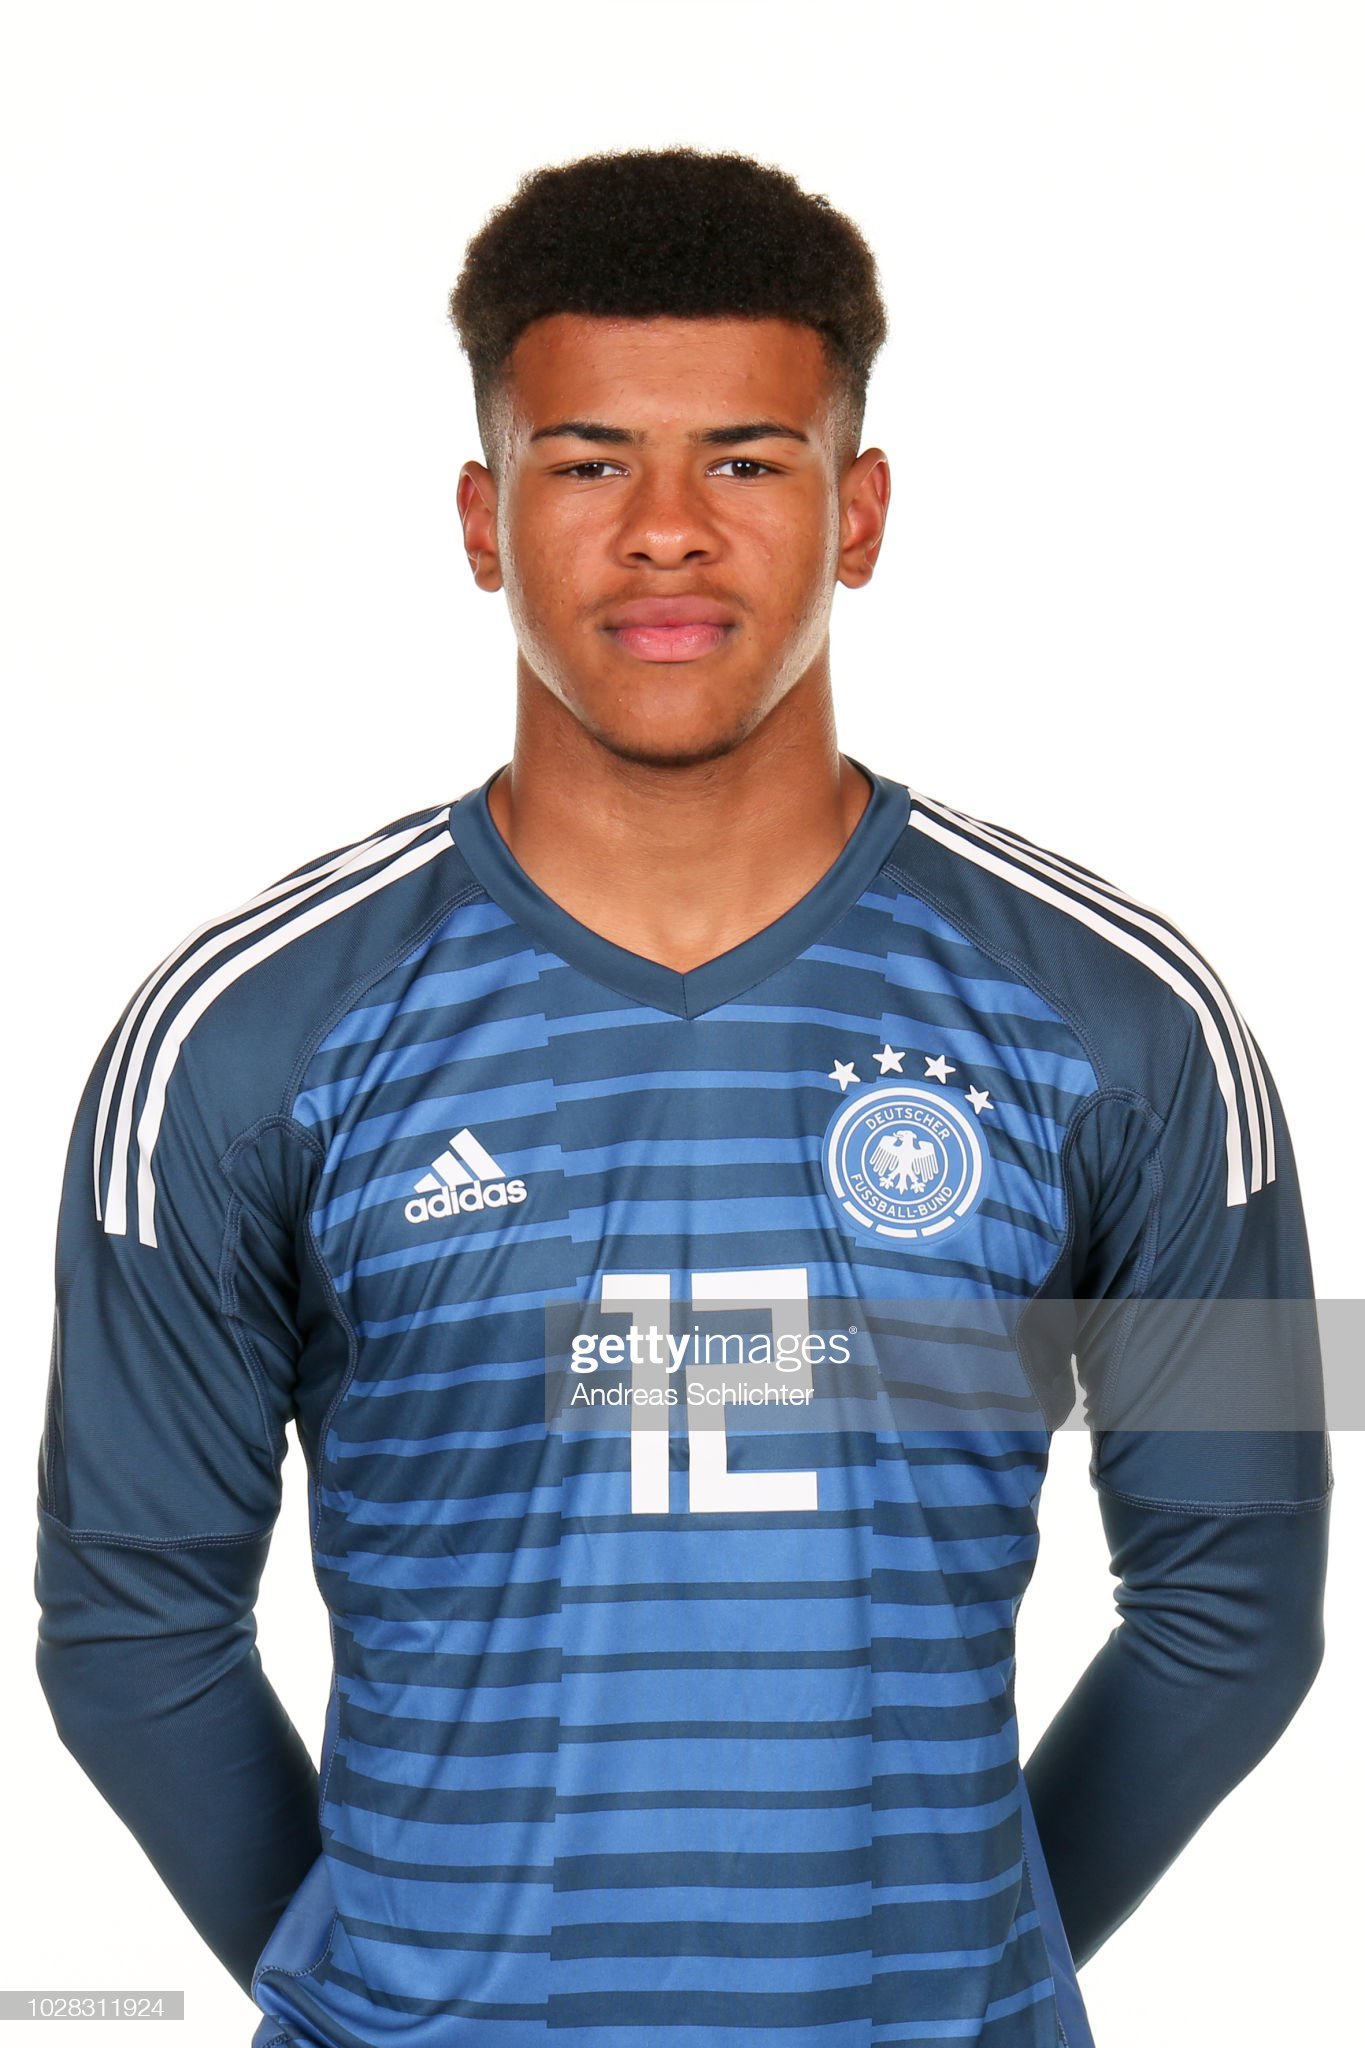 https://media.gettyimages.com/photos/noah-atubolu-during-the-u17-germany-team-presentation-on-september-6-picture-id1028311924?s=2048x2048